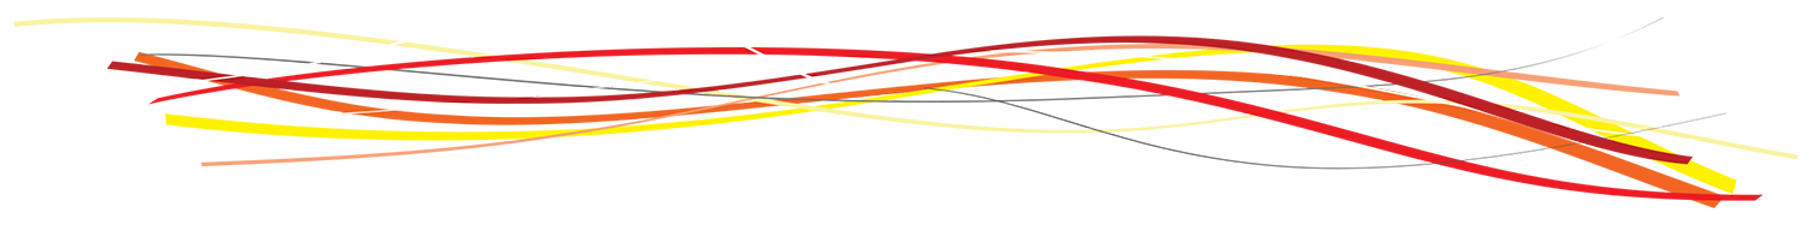 wires-3.png